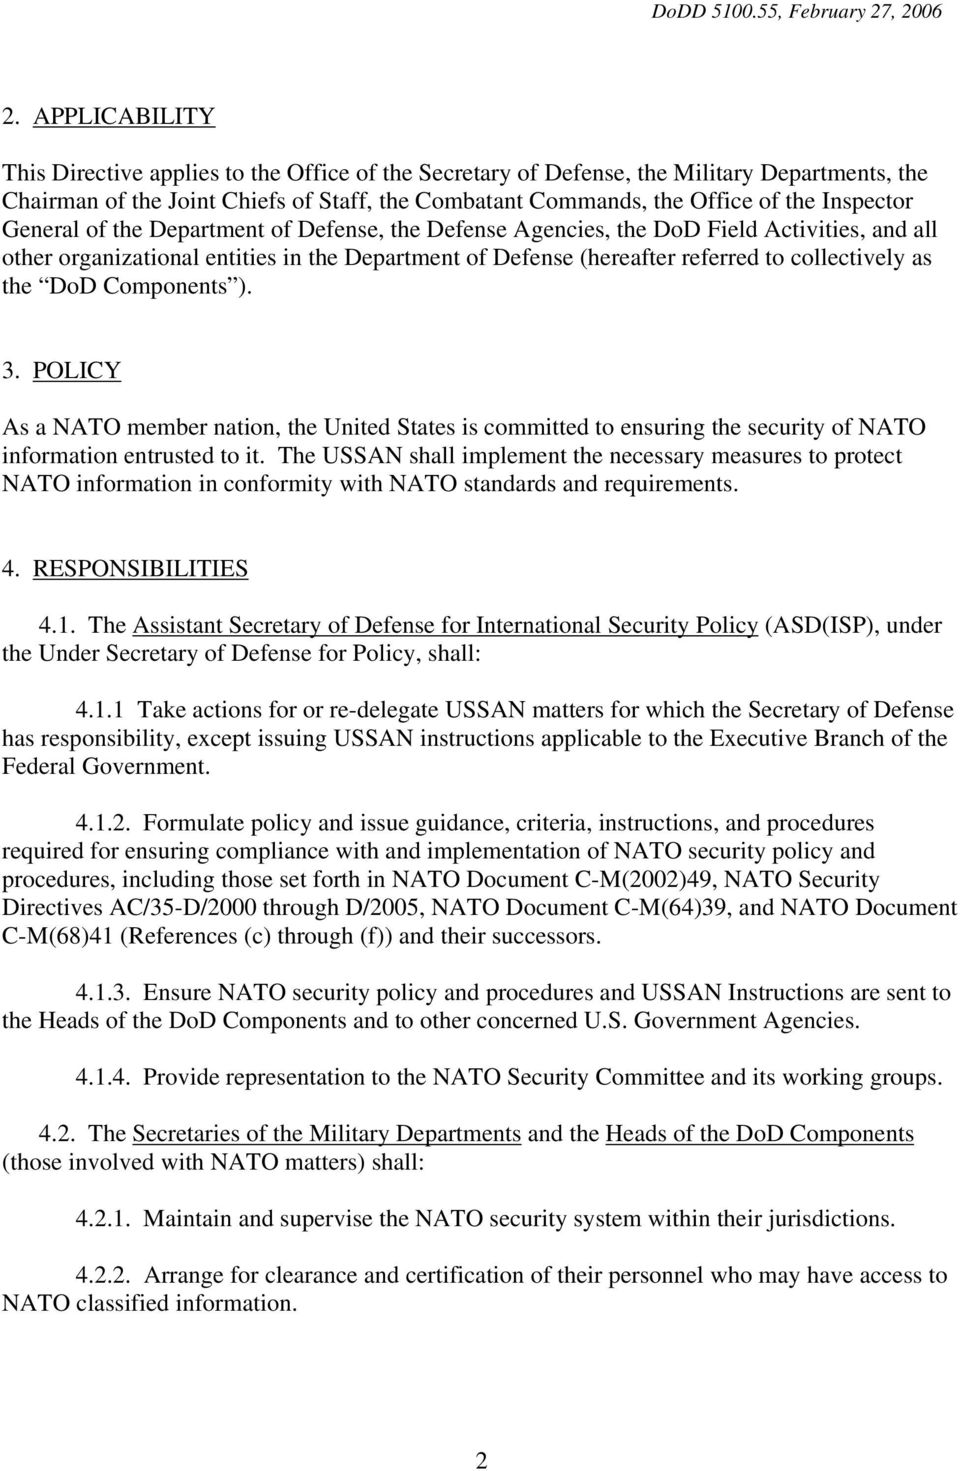 as the DoD Components ). 3. POLICY As a NATO member nation, the United States is committed to ensuring the security of NATO information entrusted to it.